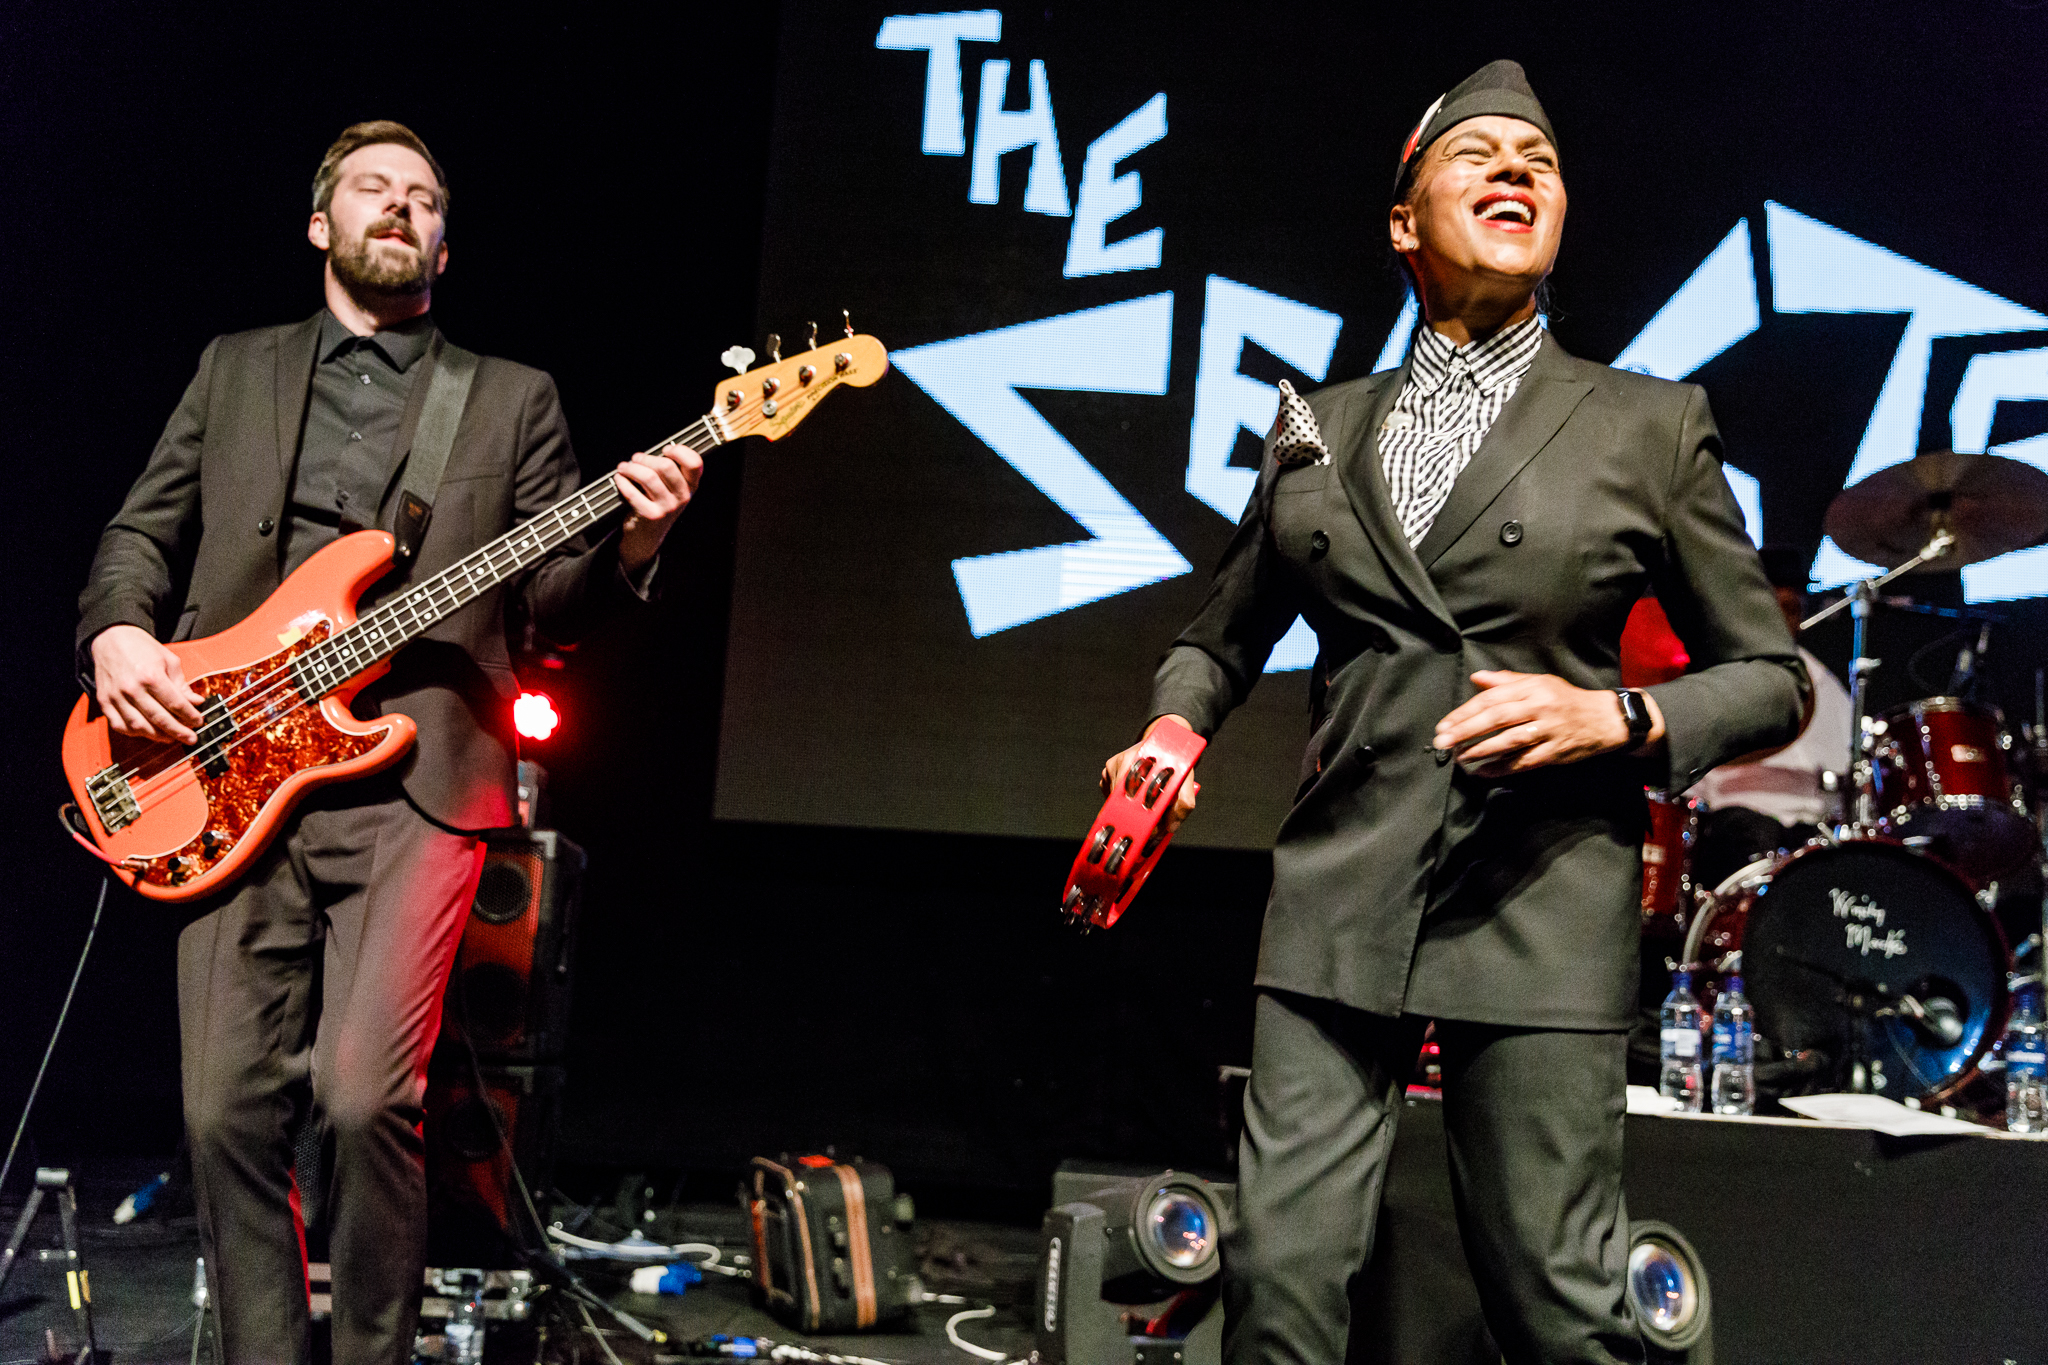 The Selecter performing at The Forum Hertfordshire in Hatfield, England - 5/26/2018 (photo by Matt Condon / @arcane93)